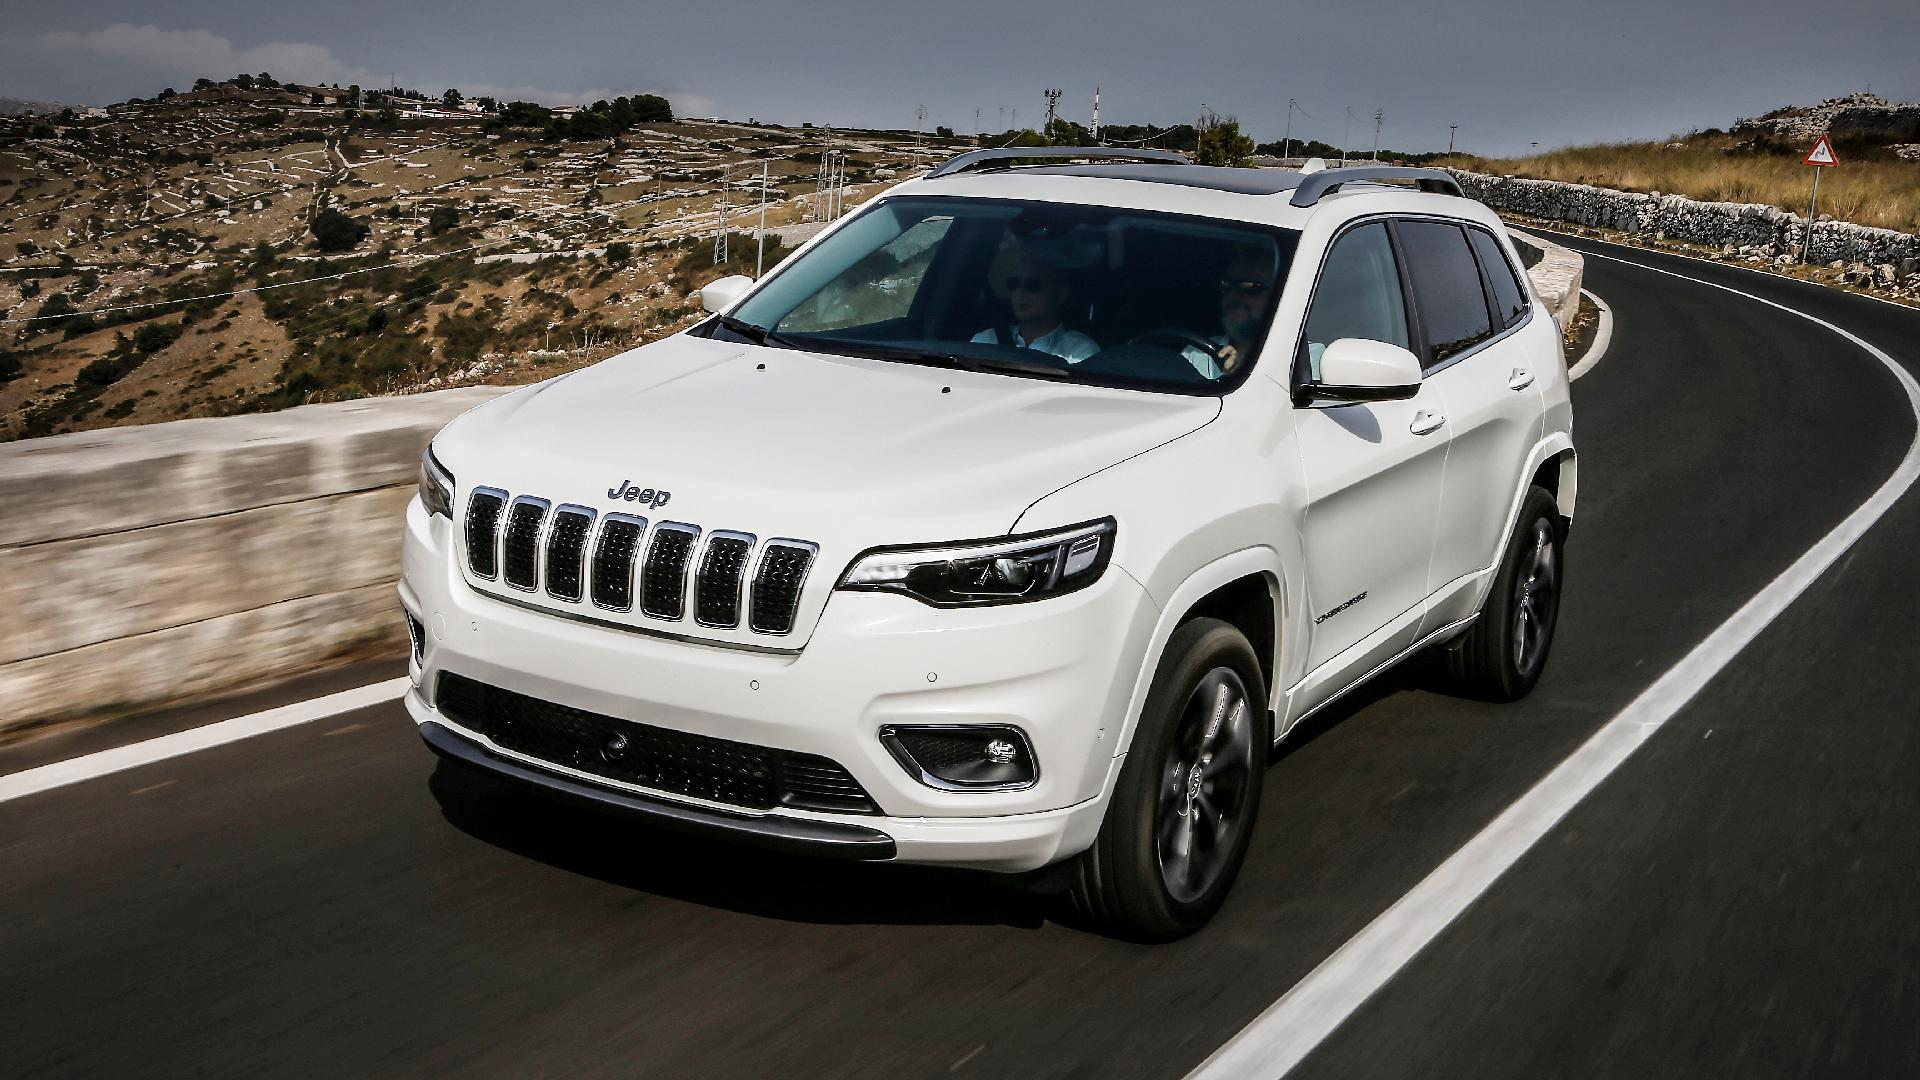 JEEP Cherokee 2.0 GME Active Drive I Limited aut